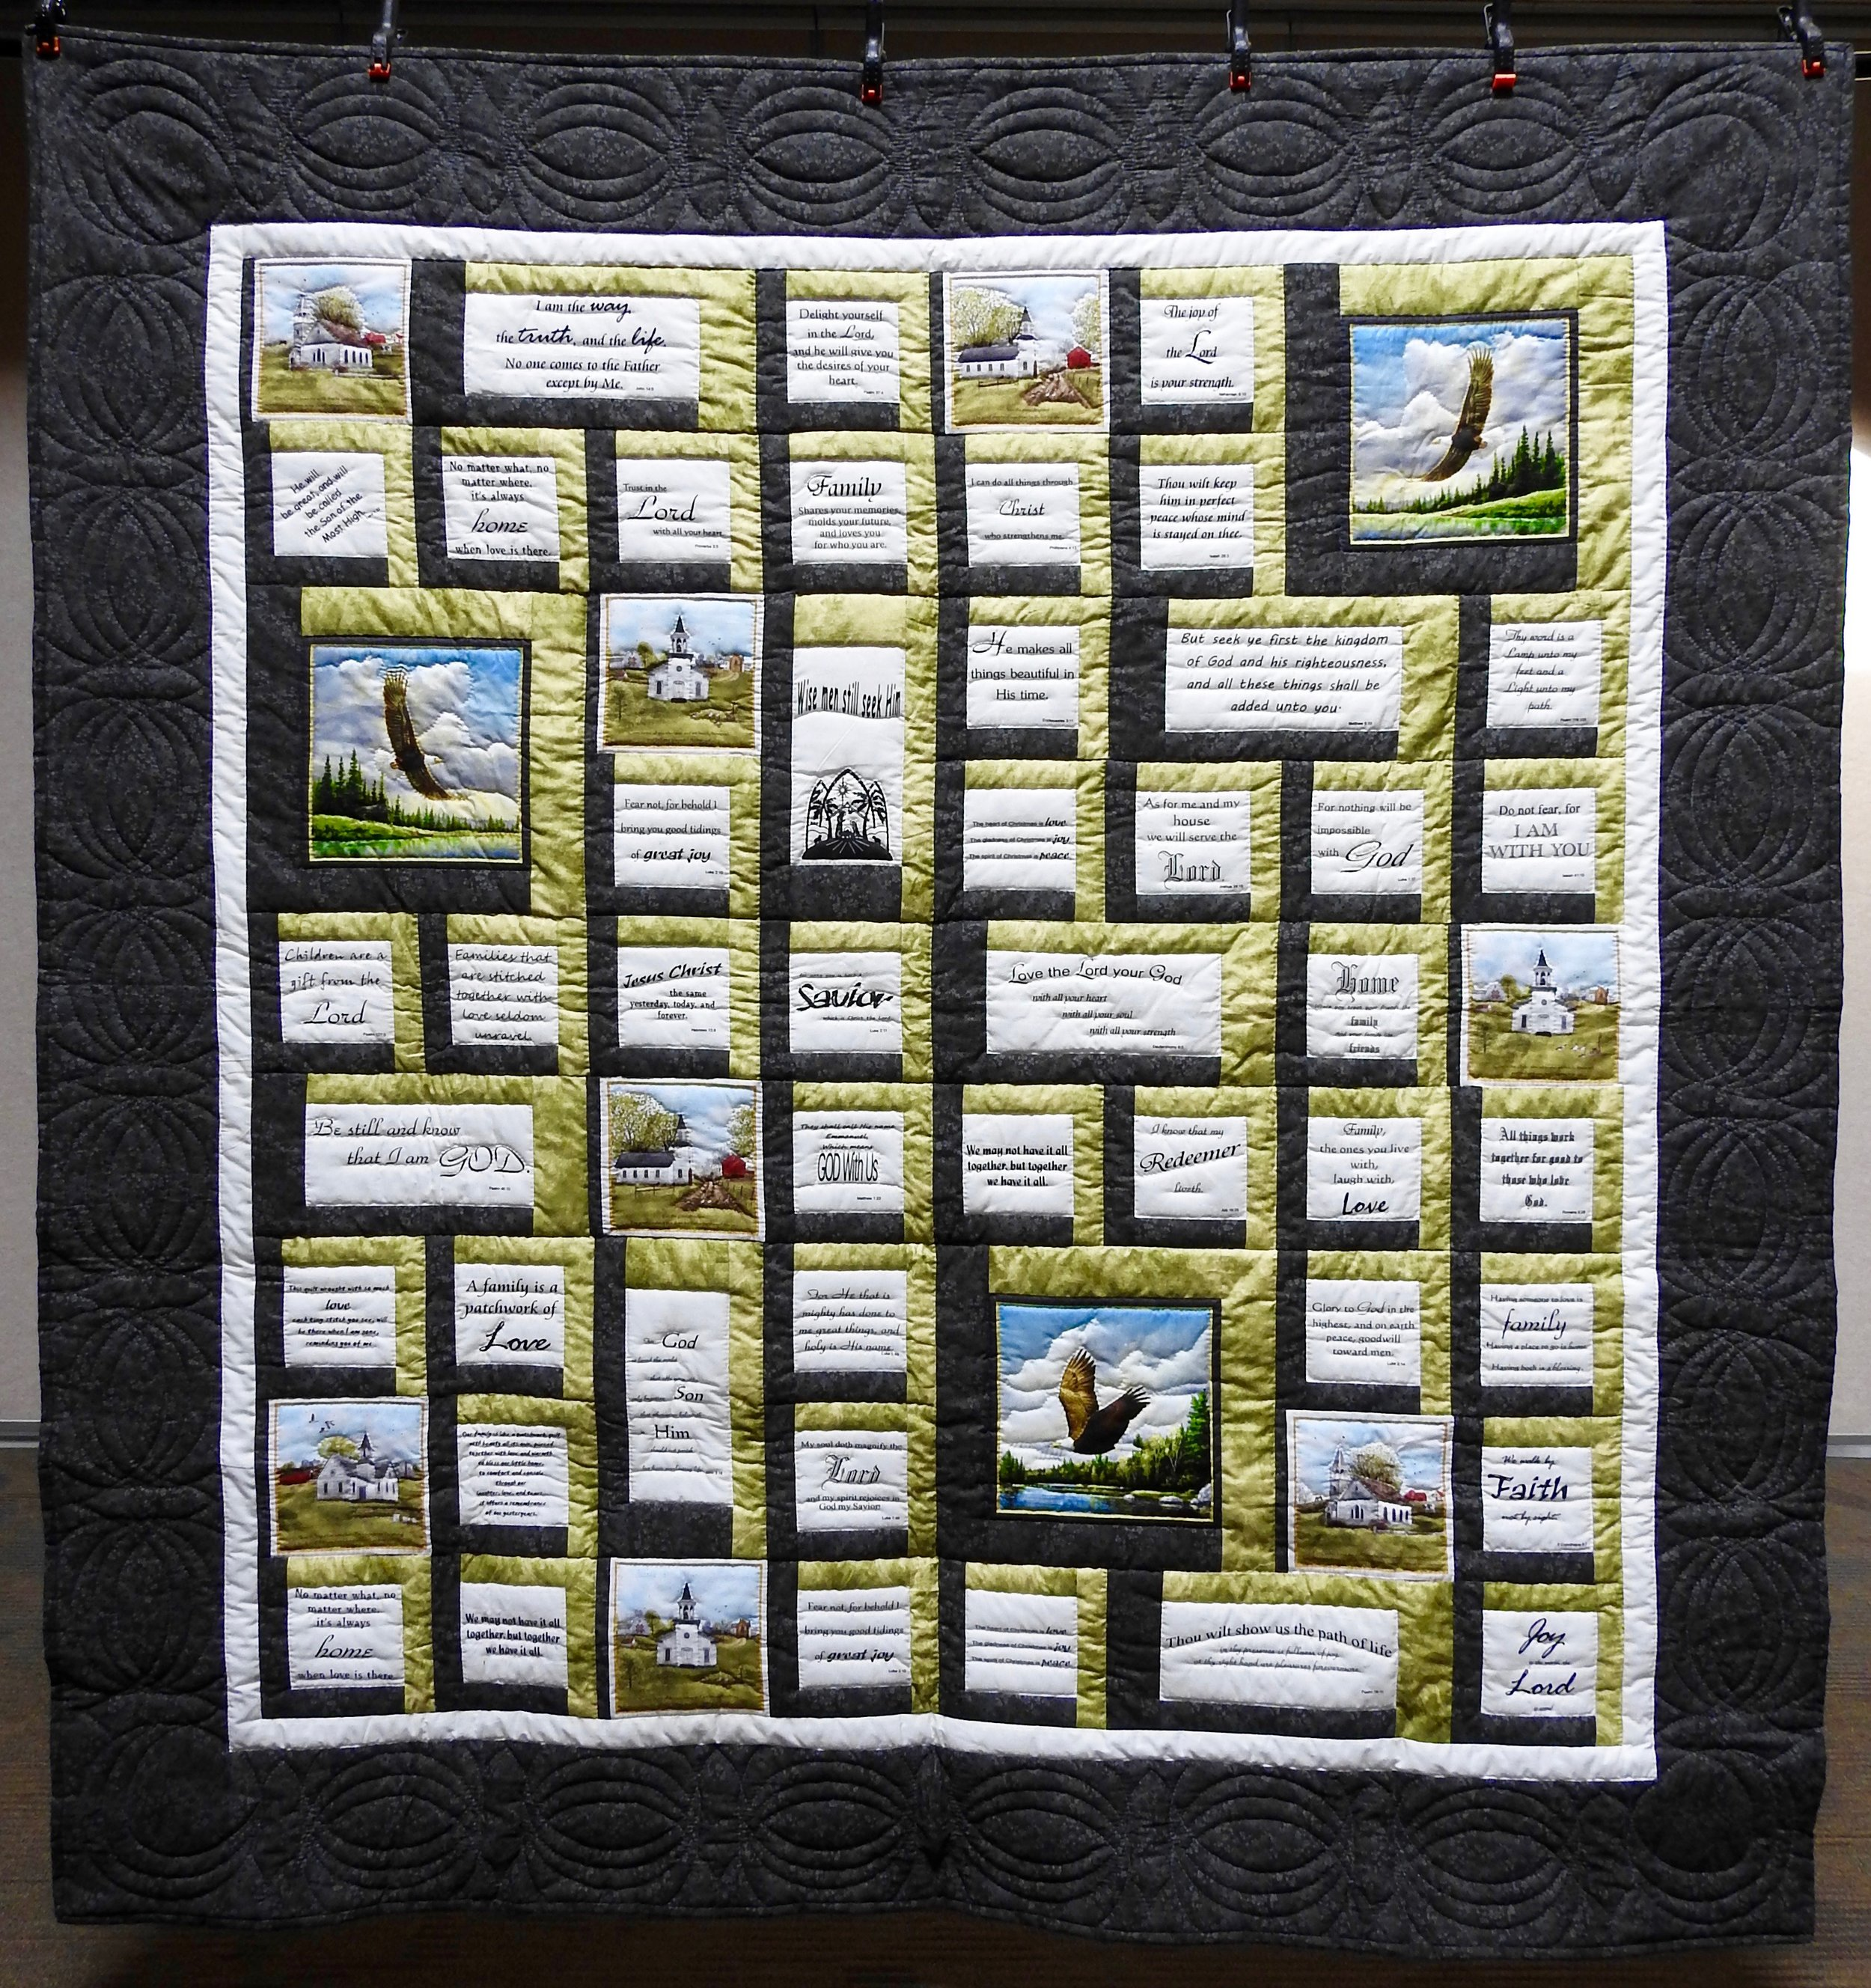 Bible Verses, Pieced, Pre=printed Panels, Hand Quilted, donated by the Crafty Ladies of Manor 2-Greencroft, 80 x 84""